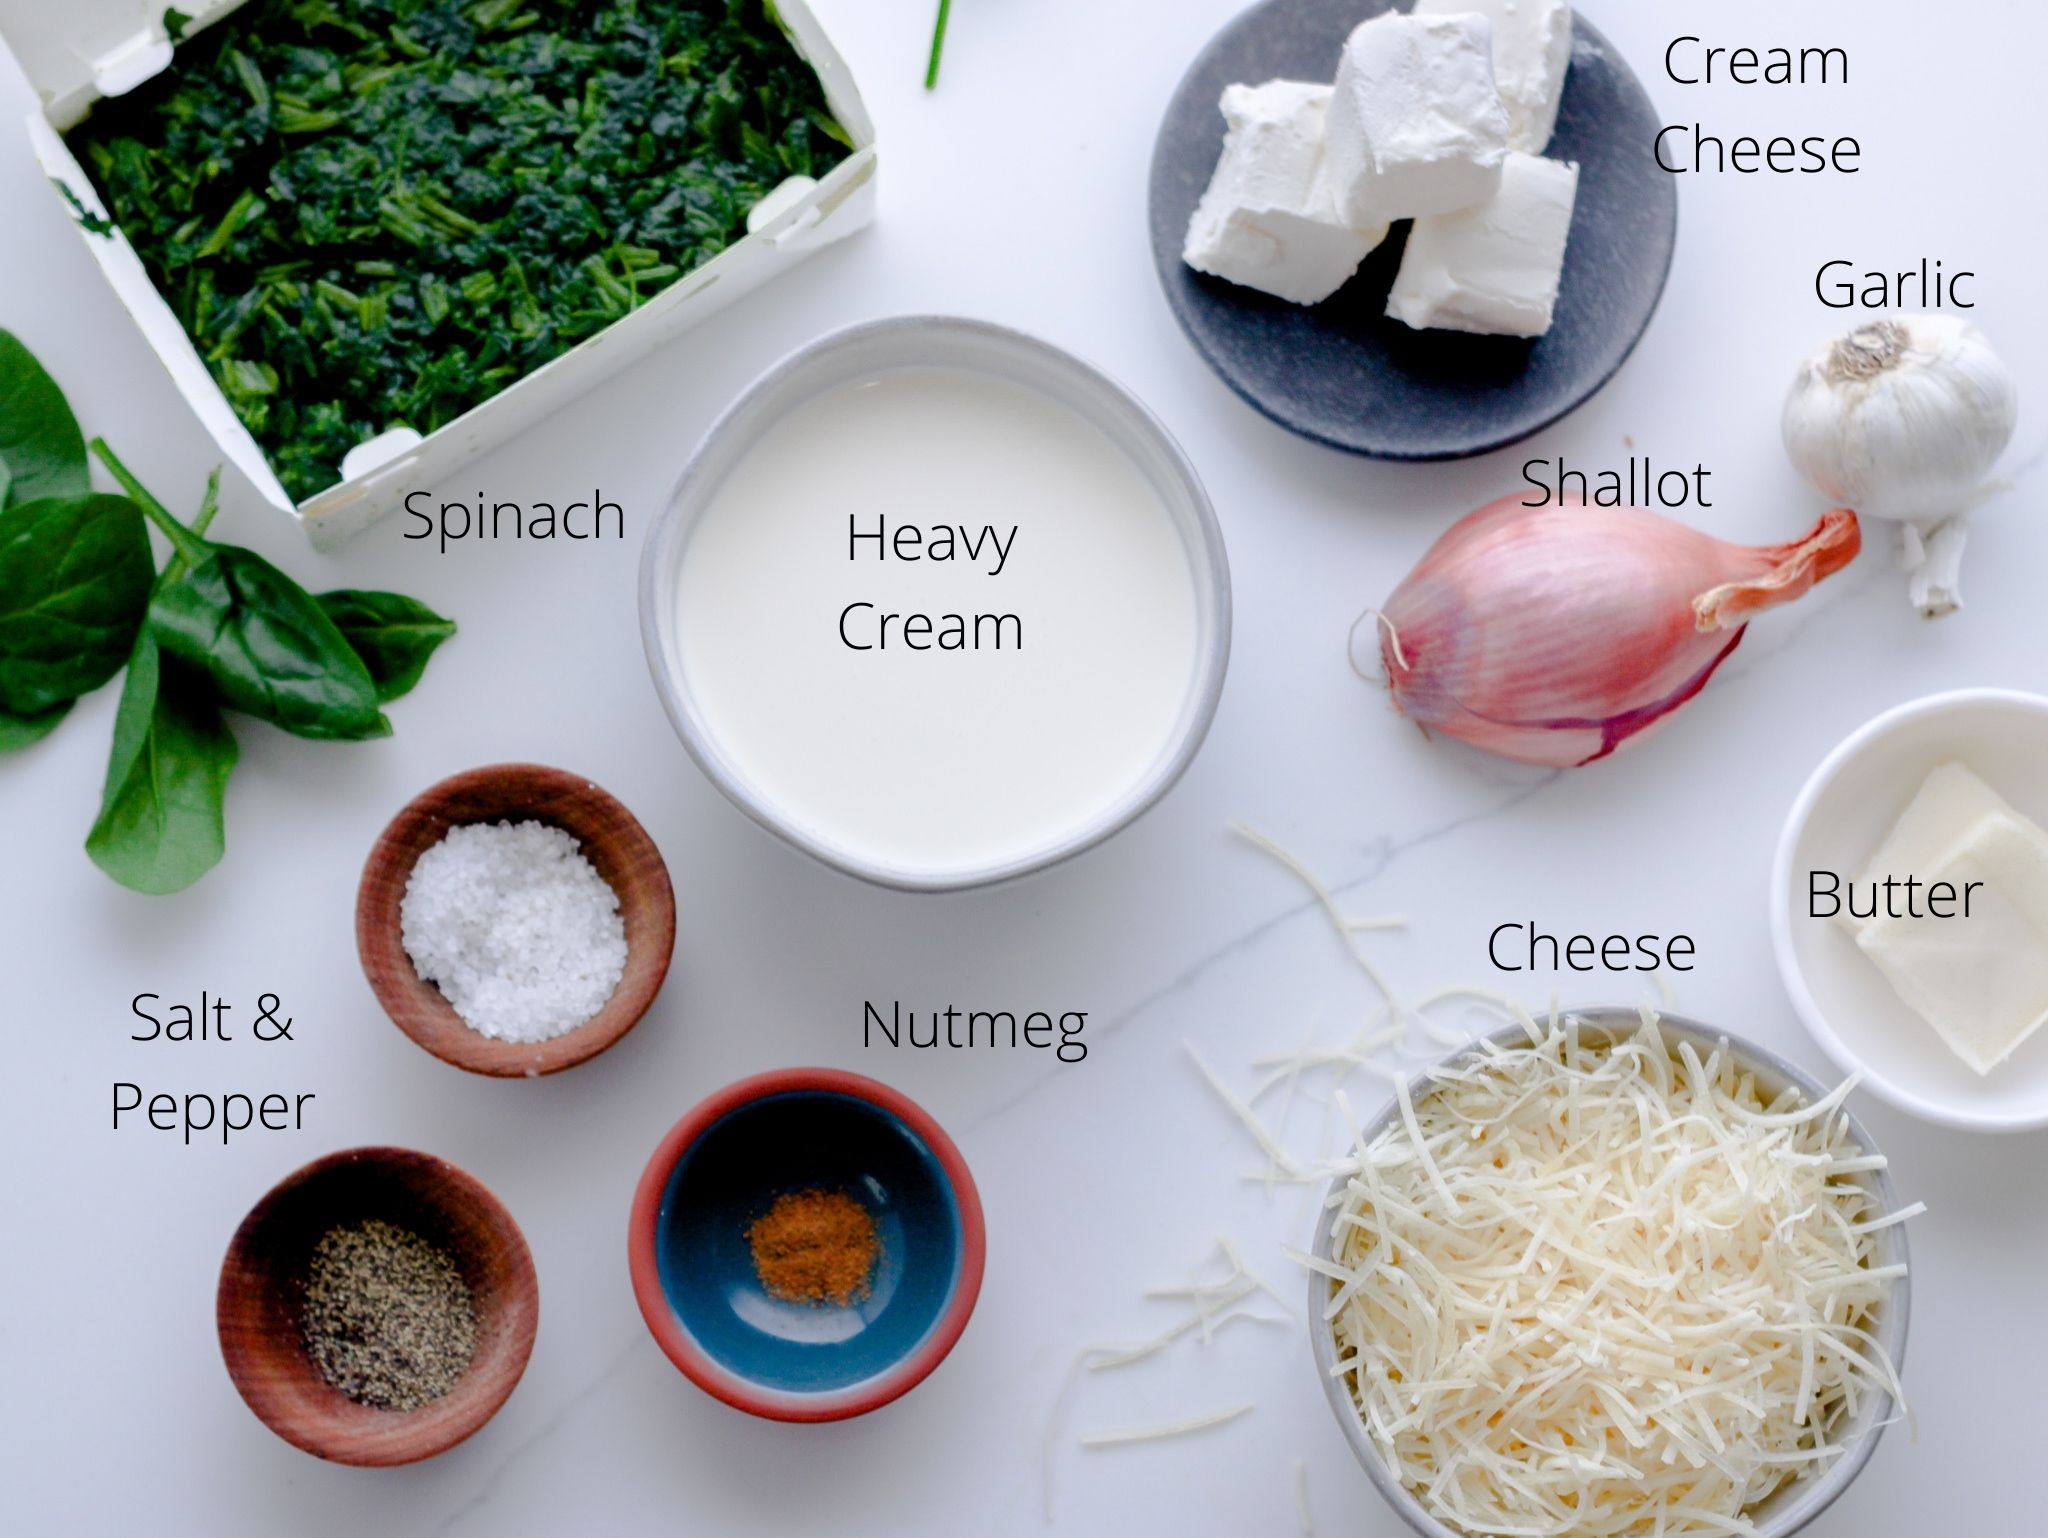 Creamed spinach ingredients including frozen spinach, heavy cream, cream cheese, shallow, garlic, butter, parmesan cheese, salt, pepper and nutmeg laid out and ready to be made into the easiest and cheesiest side dish.